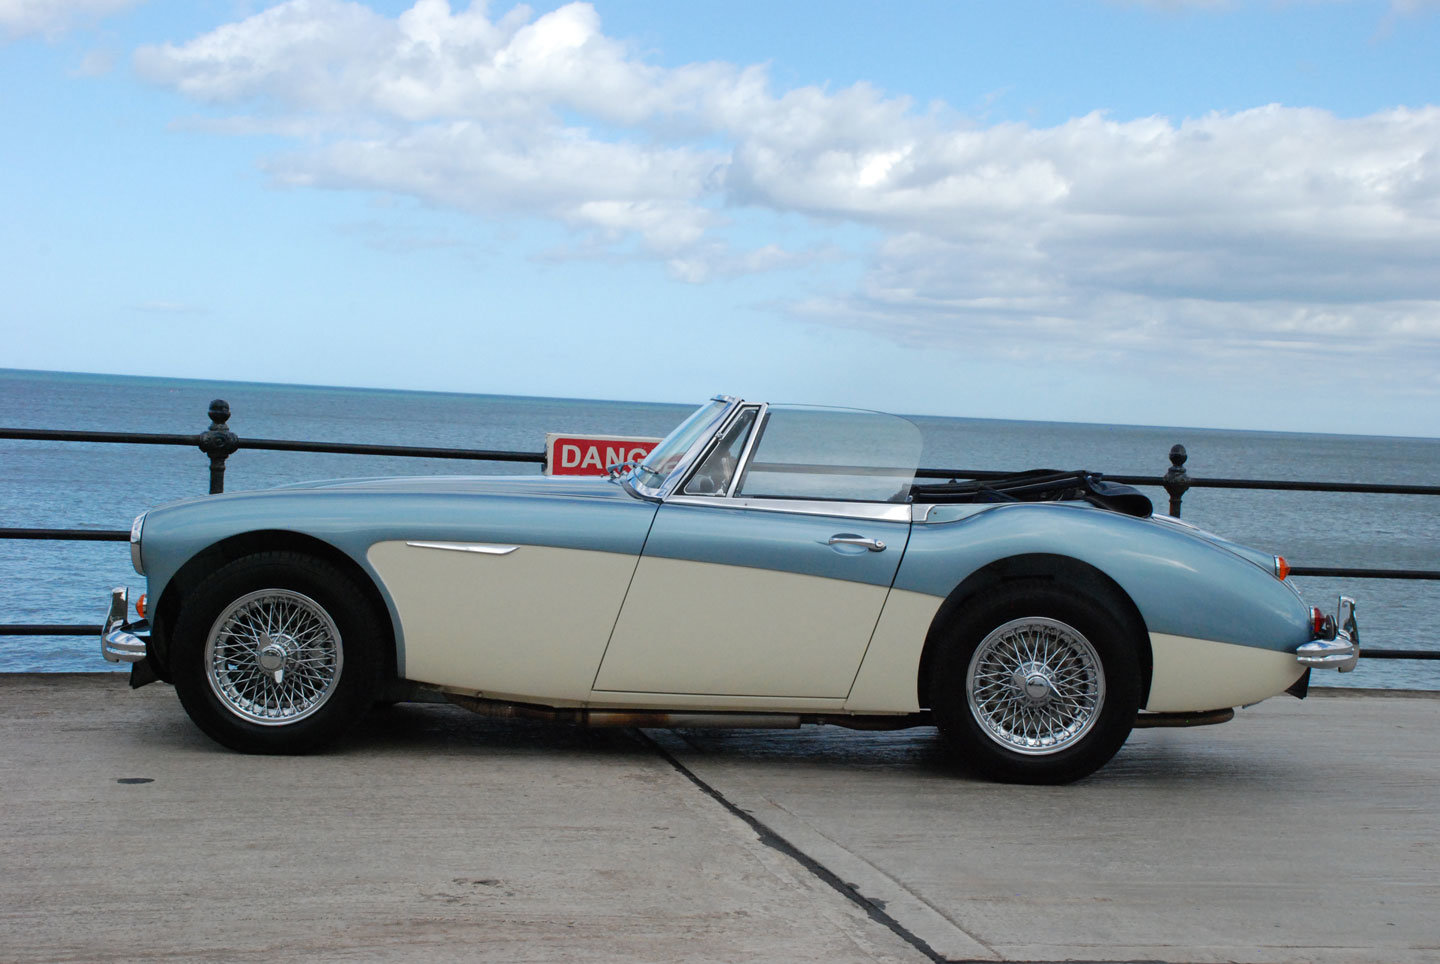 1966 Austin Healey 3000 MK 3 BJ8 phase 2 For Sale (picture 7 of 10)